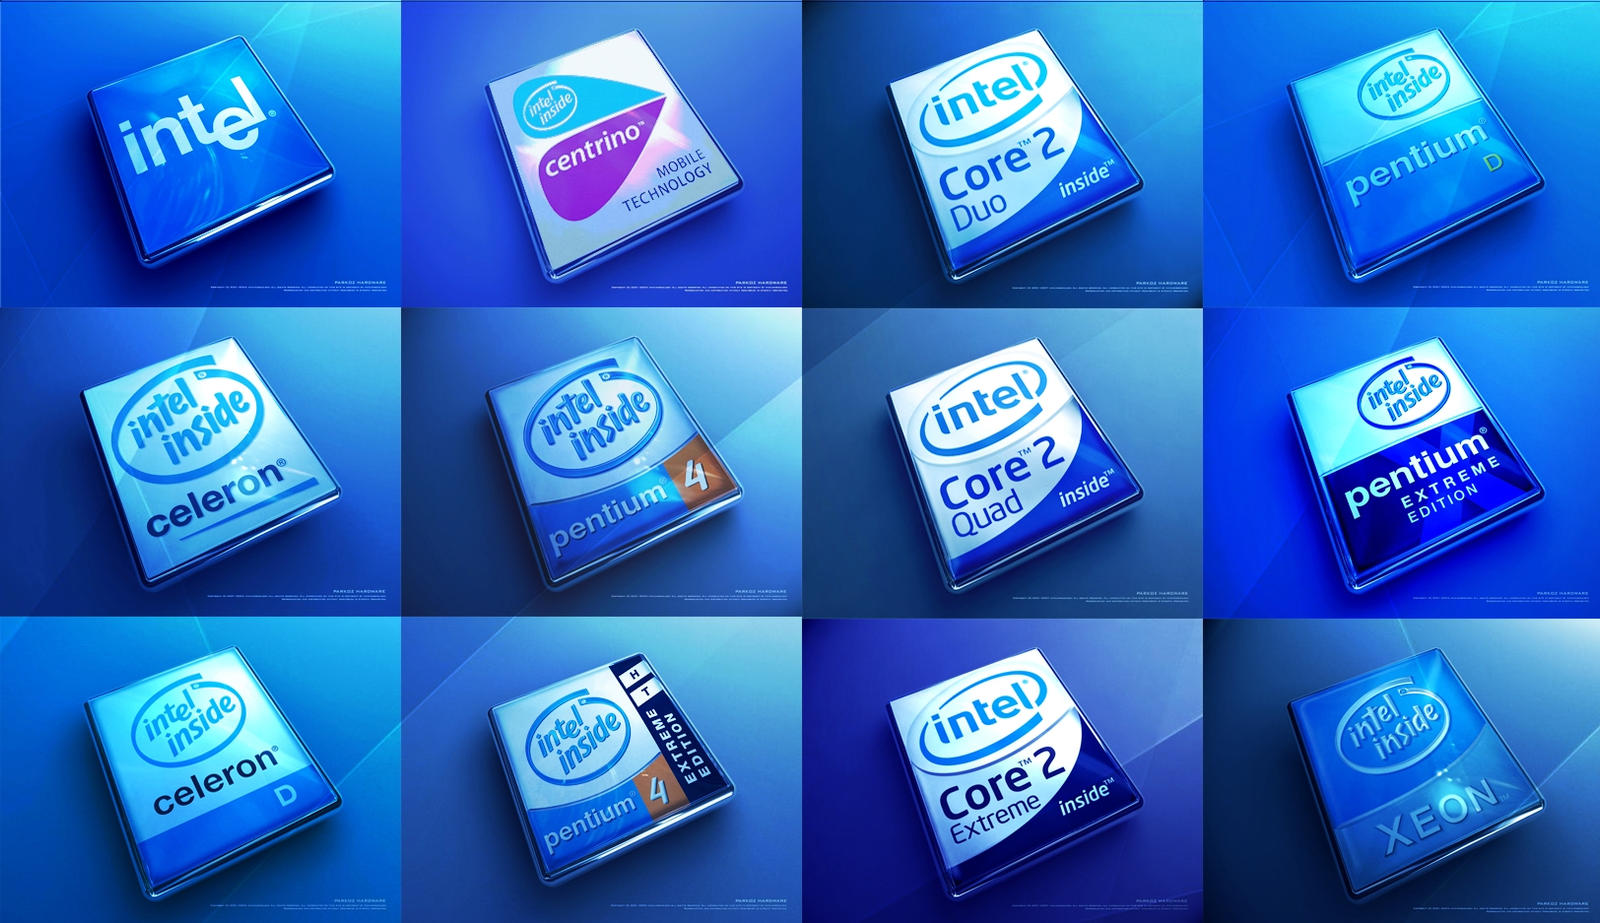 Intel Family Chipset By Cyclopsxbd On DeviantArt